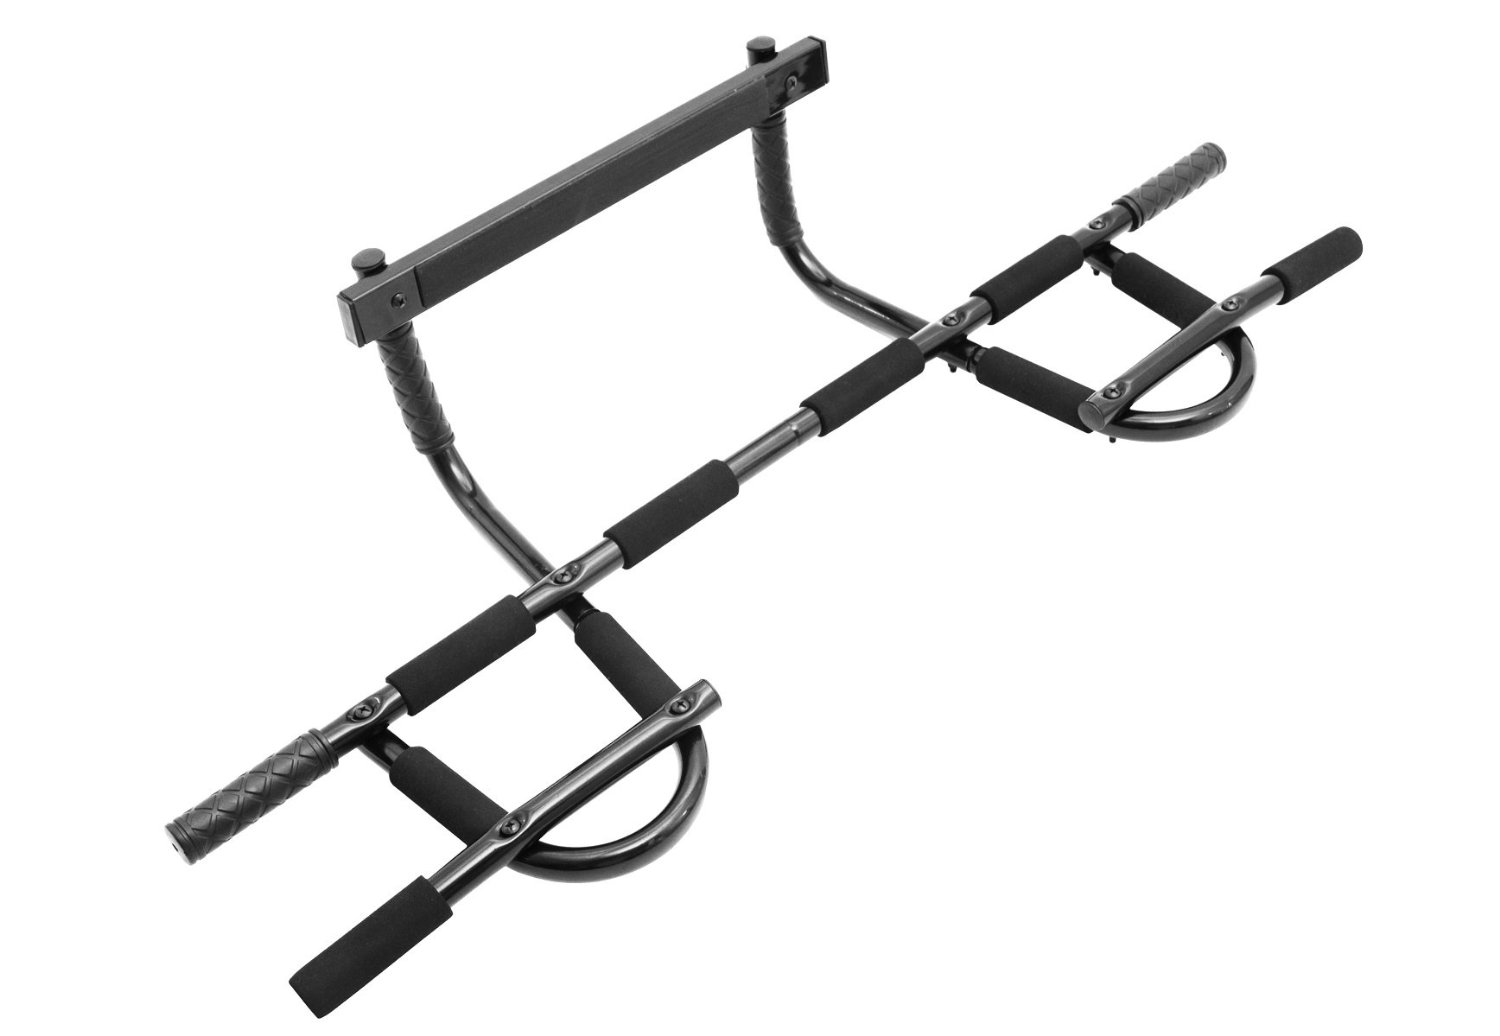 Best Pull Up Bars  Chin Up Bar Reviews 2018. Dog Door Lowes. Tuff Shed Garage. Barn Style Doors Interior. Glass Cabinet Door Hinges. Magnetic Door Knocker. Parking Garage Coupons Nyc. Flush Garage Door. Taylor Windows And Doors